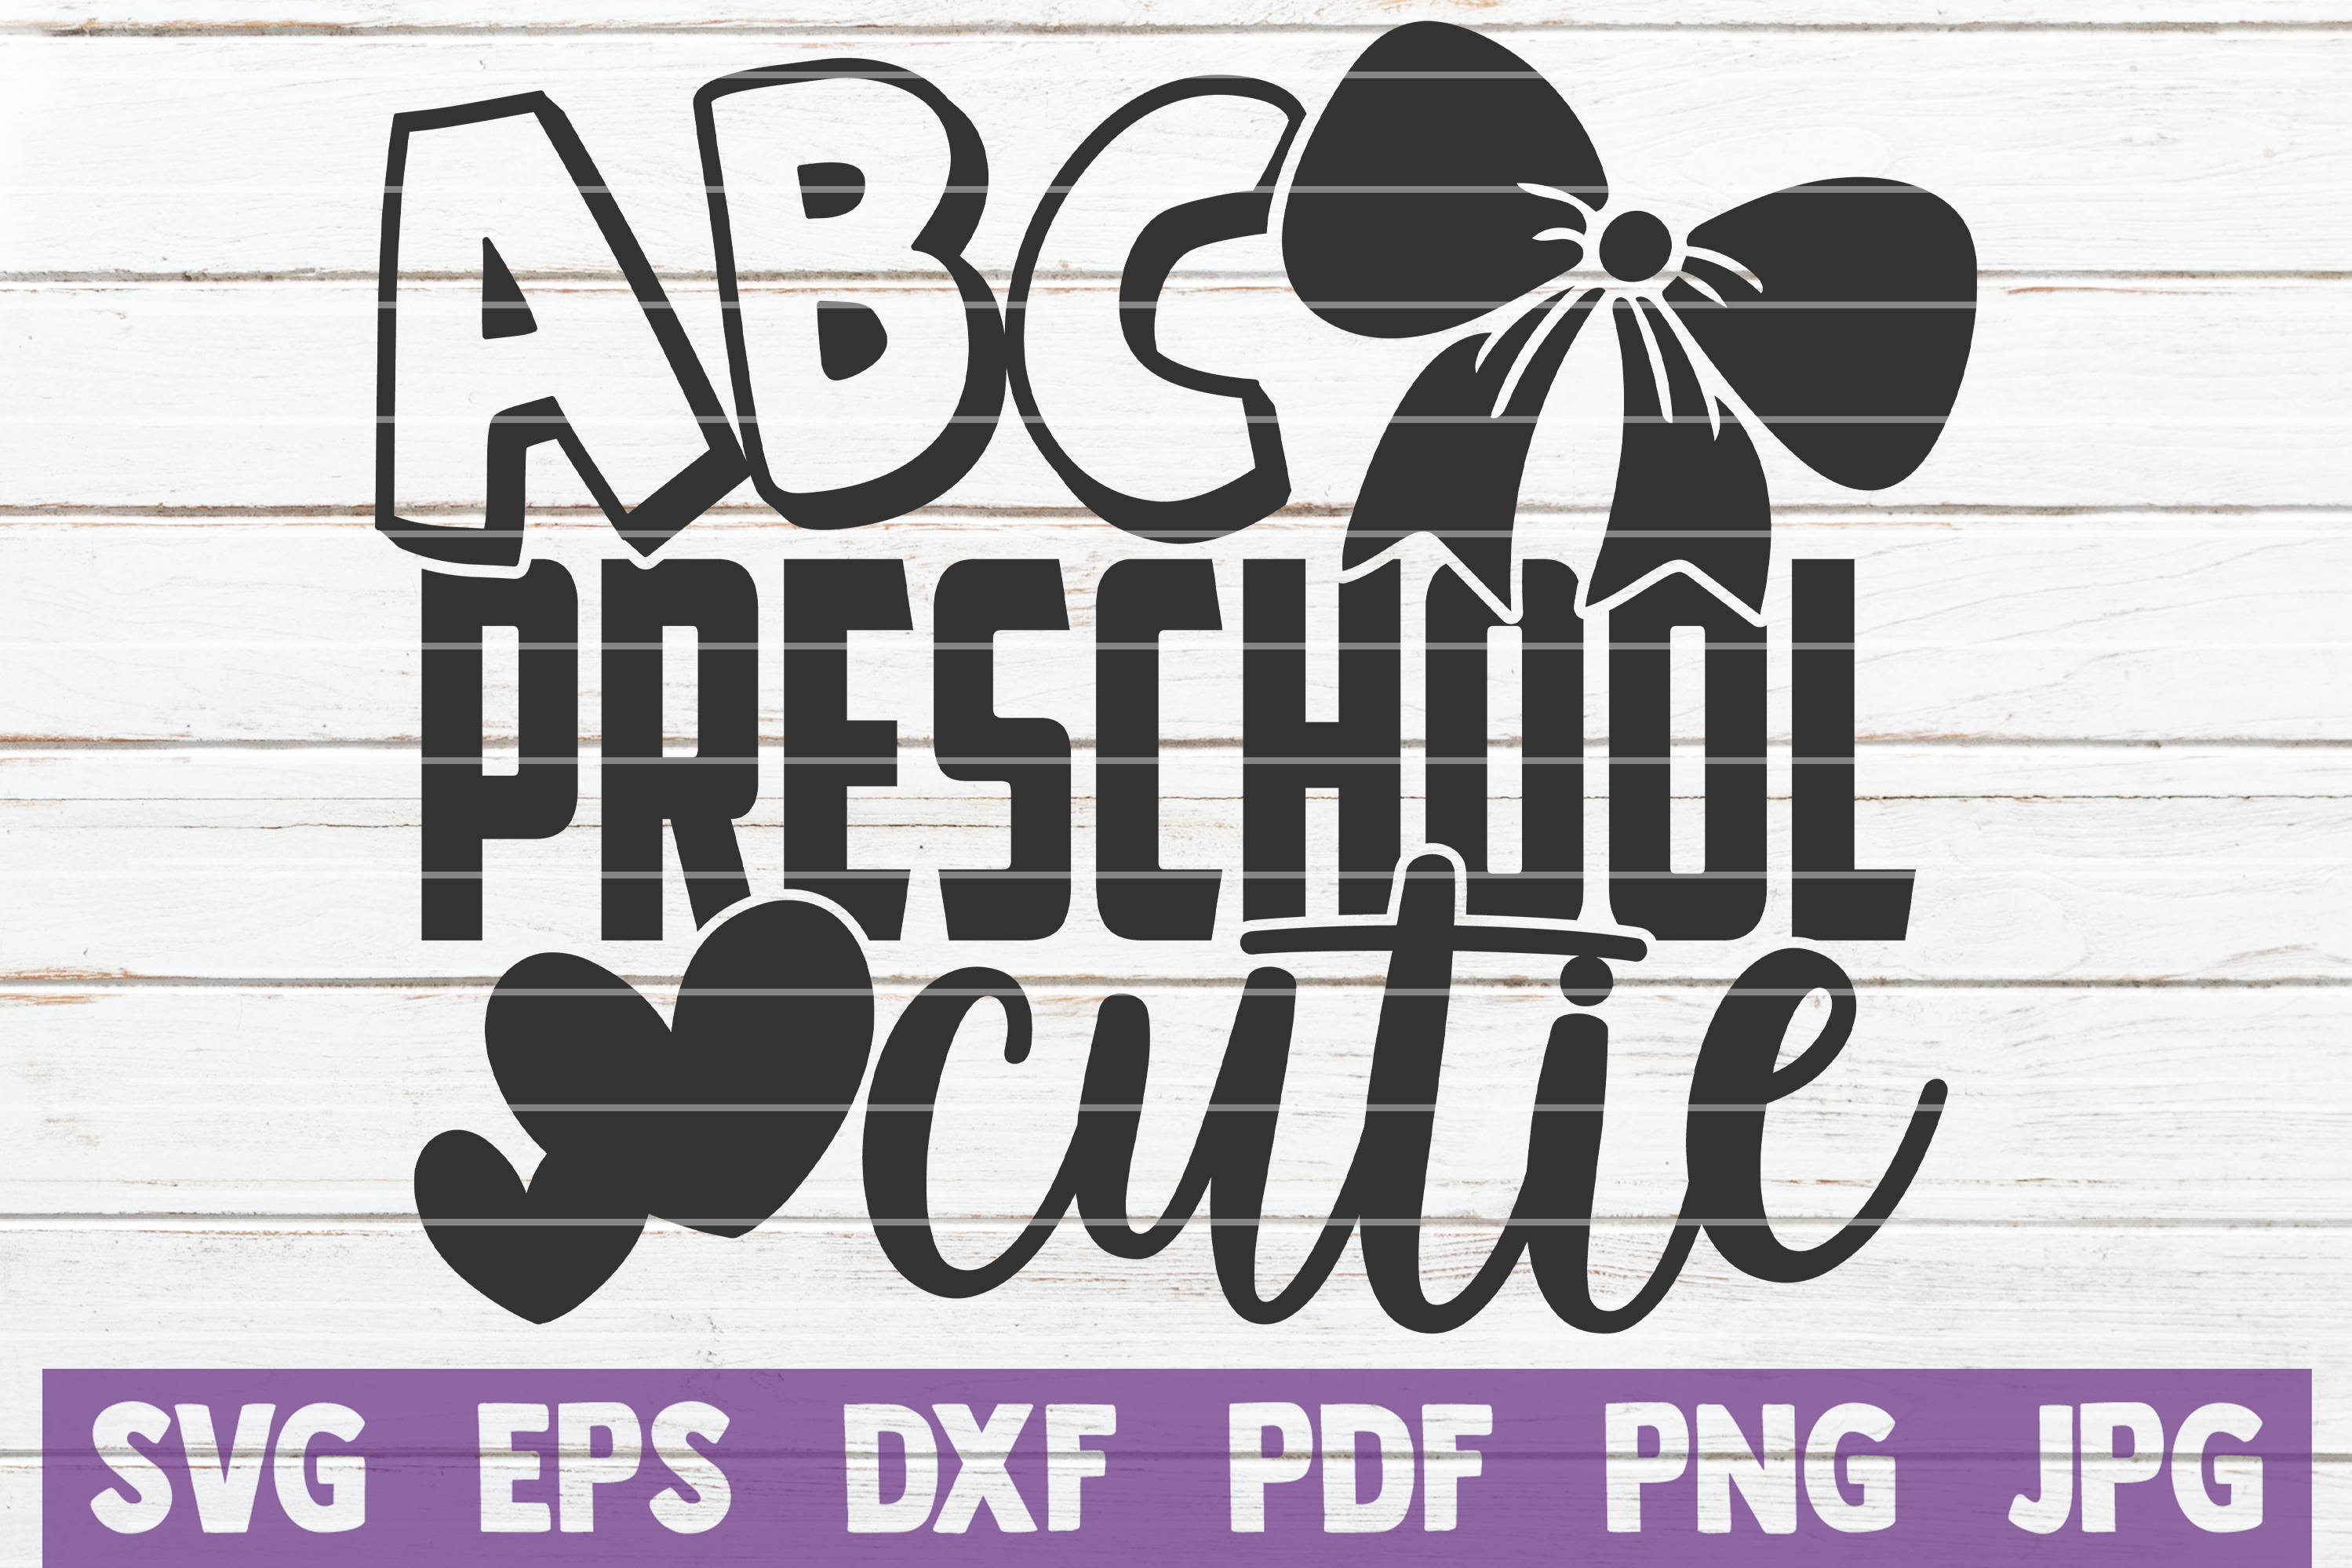 Download Free Preschool Cutie Graphic By Mintymarshmallows Creative Fabrica for Cricut Explore, Silhouette and other cutting machines.